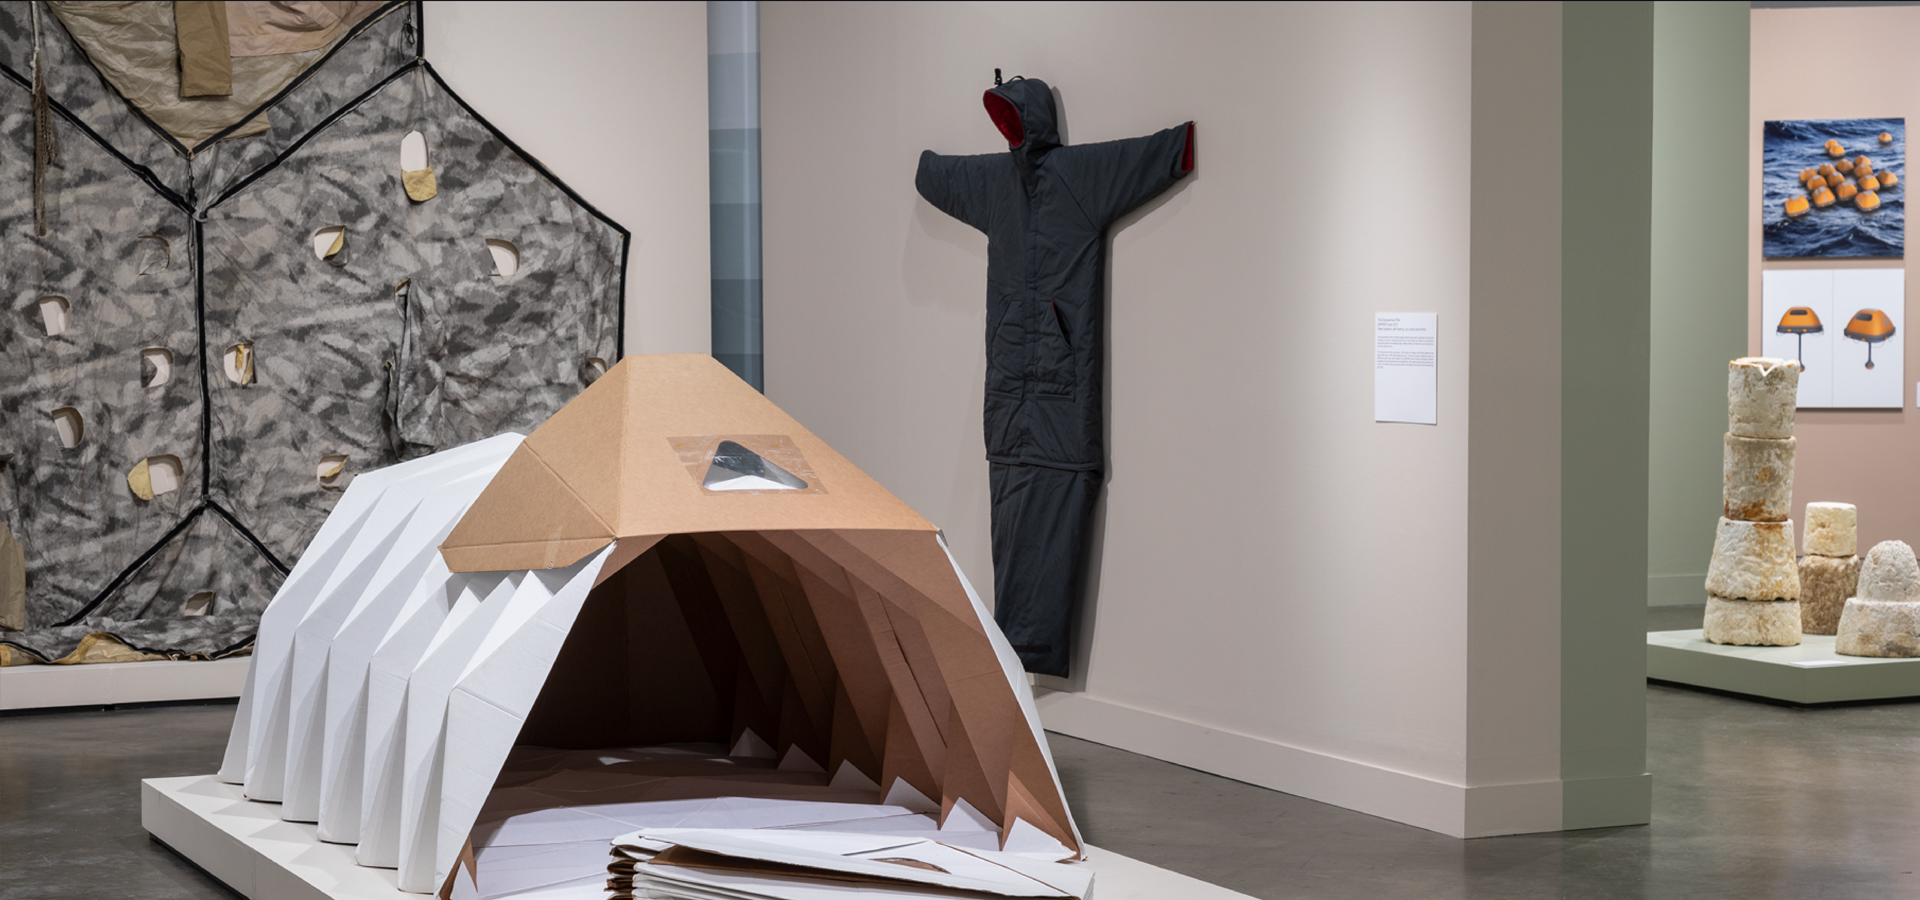 Survival Architecture and the Art of Resilience, 2019-2020, Museum of Craft and Design. Images courtesy of Henrik Kam